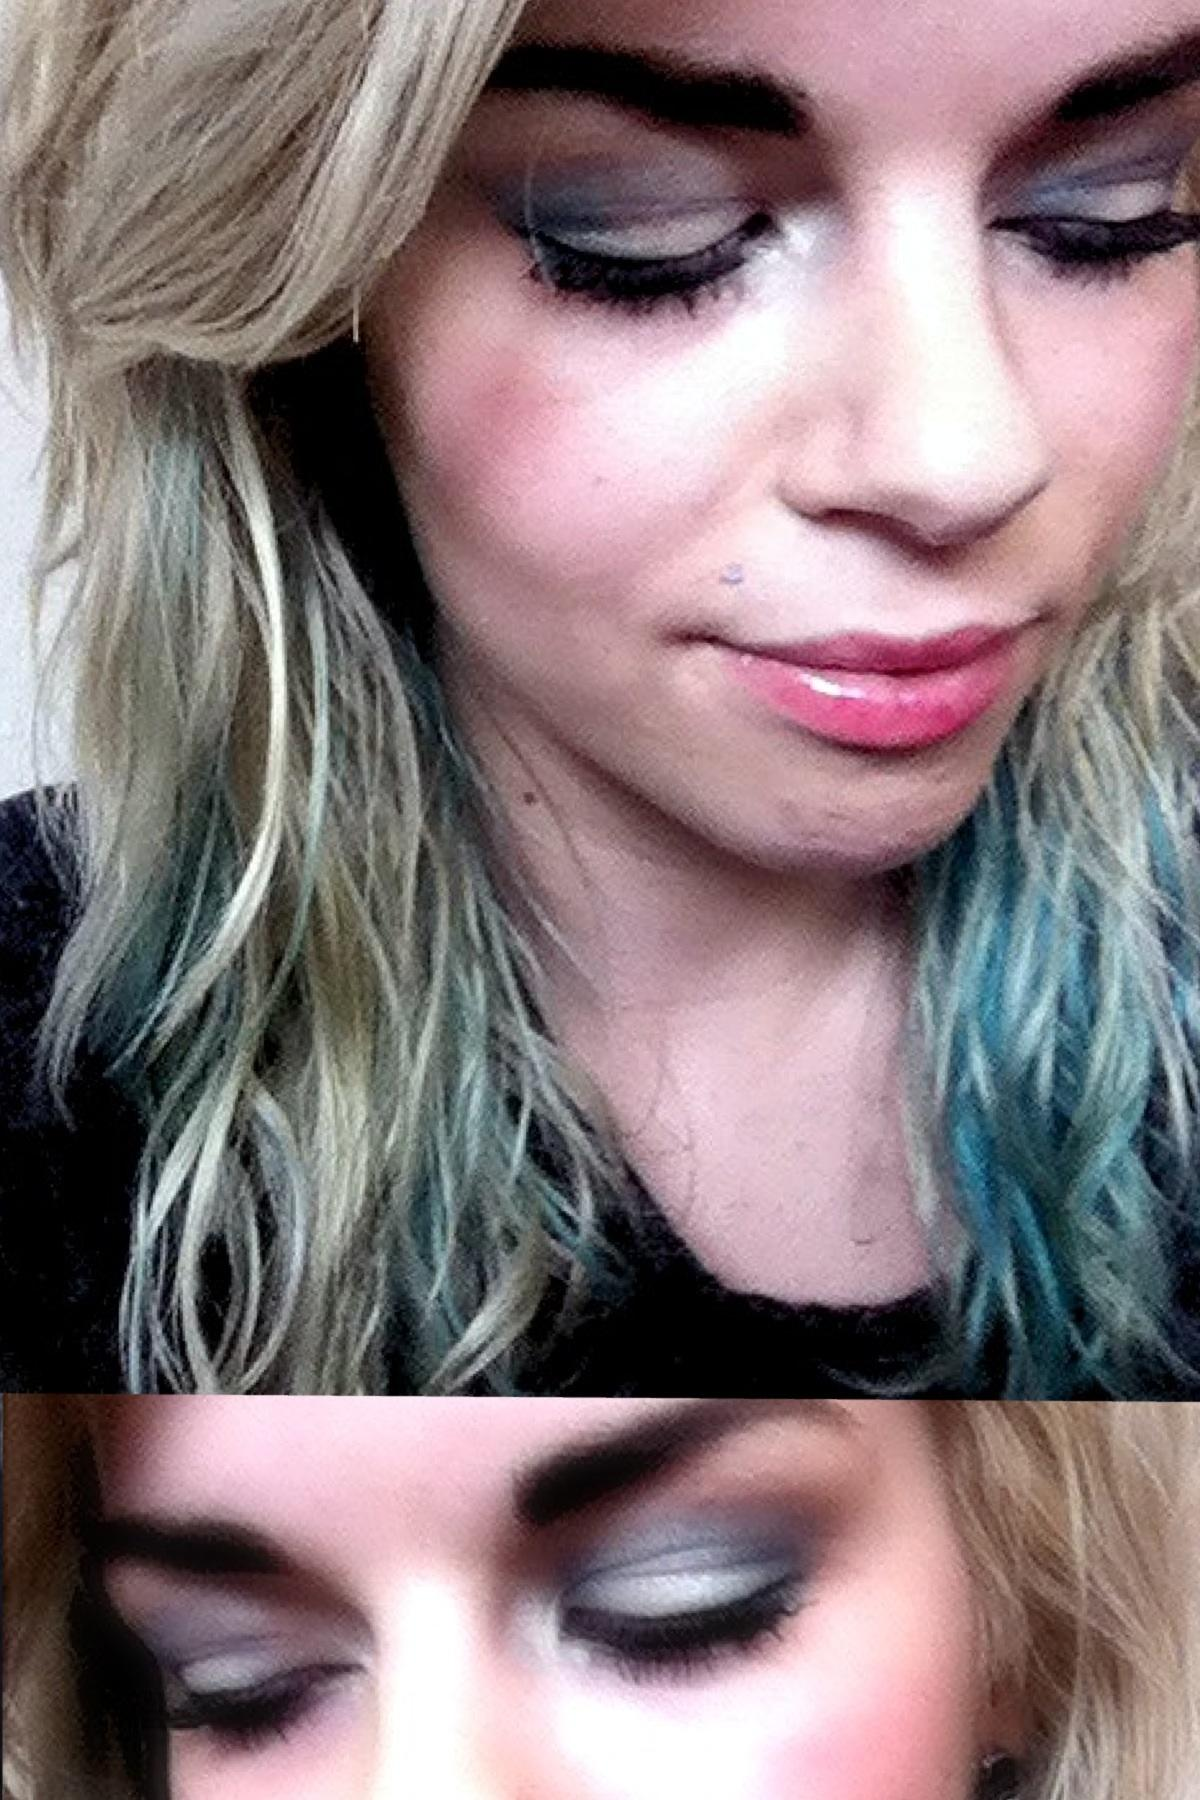 She Got Her Hair Matching Her MakeUp  - image 1 - student project